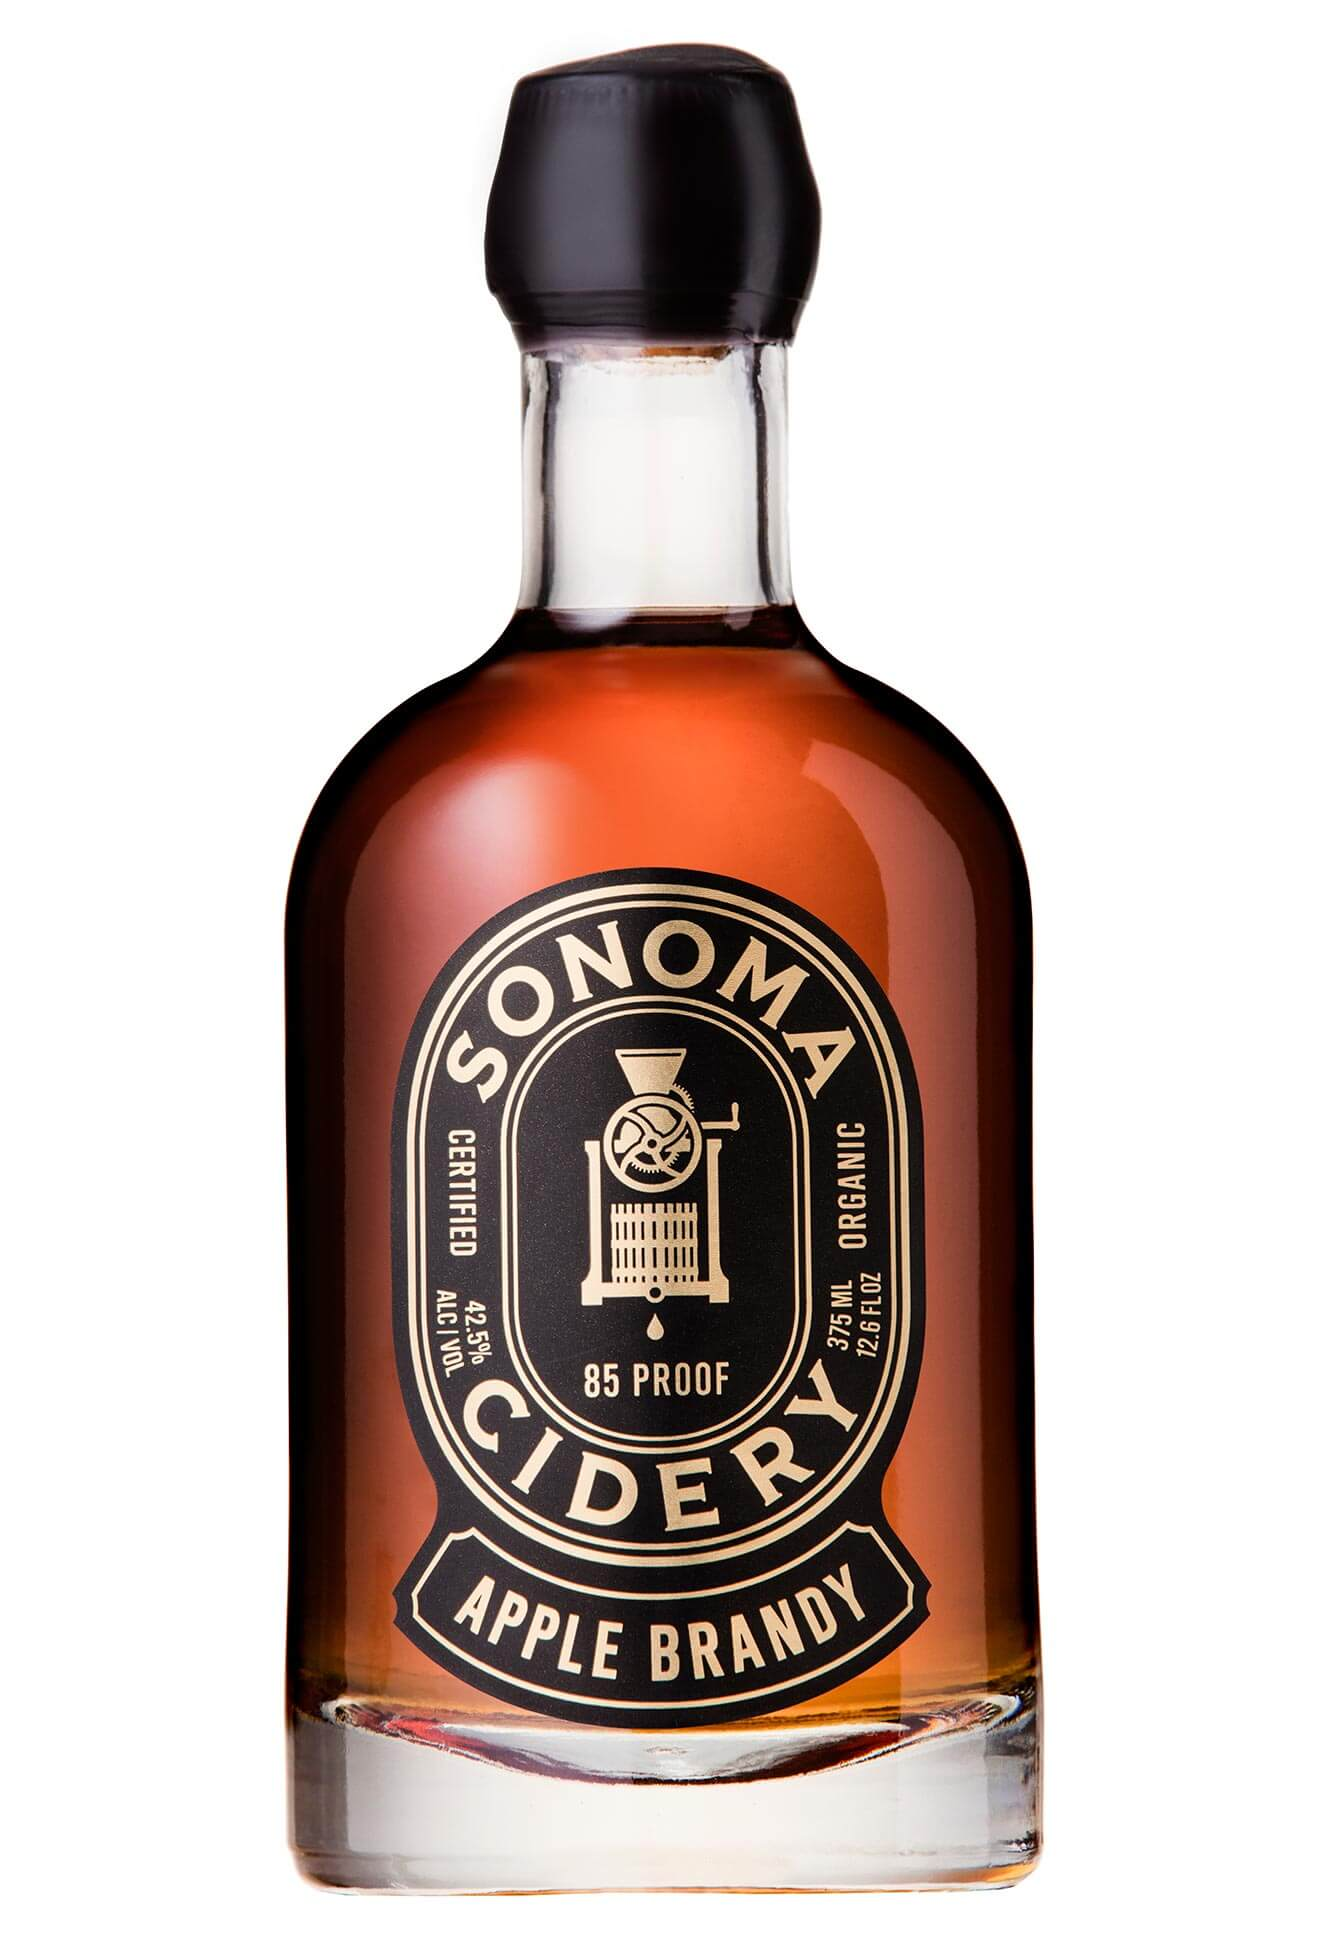 Sonoma Cider Debuts Apple Brandy, featured brands